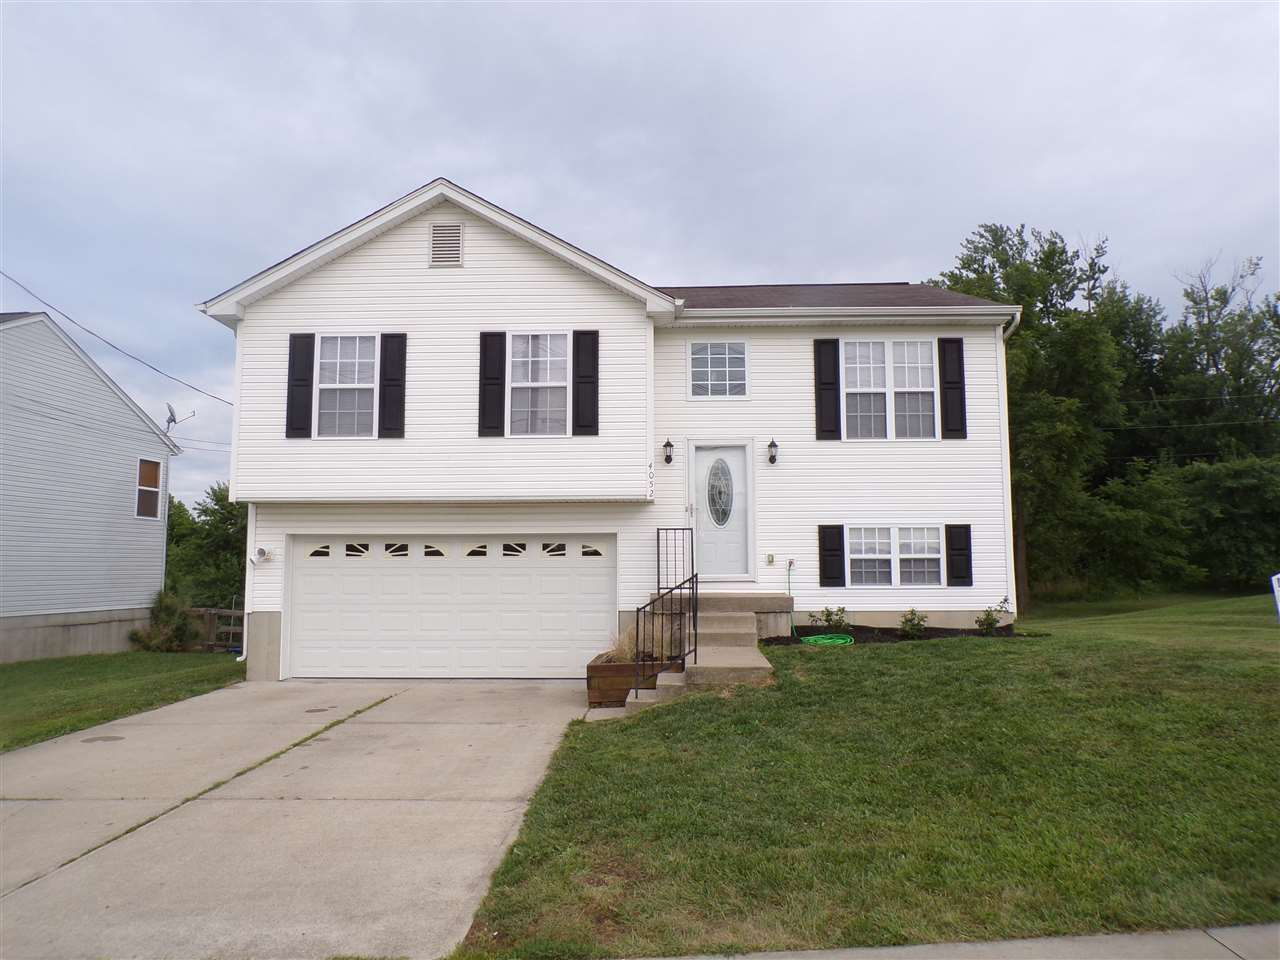 Photo 1 for 4052 Richardson Rd Independence, KY 41051